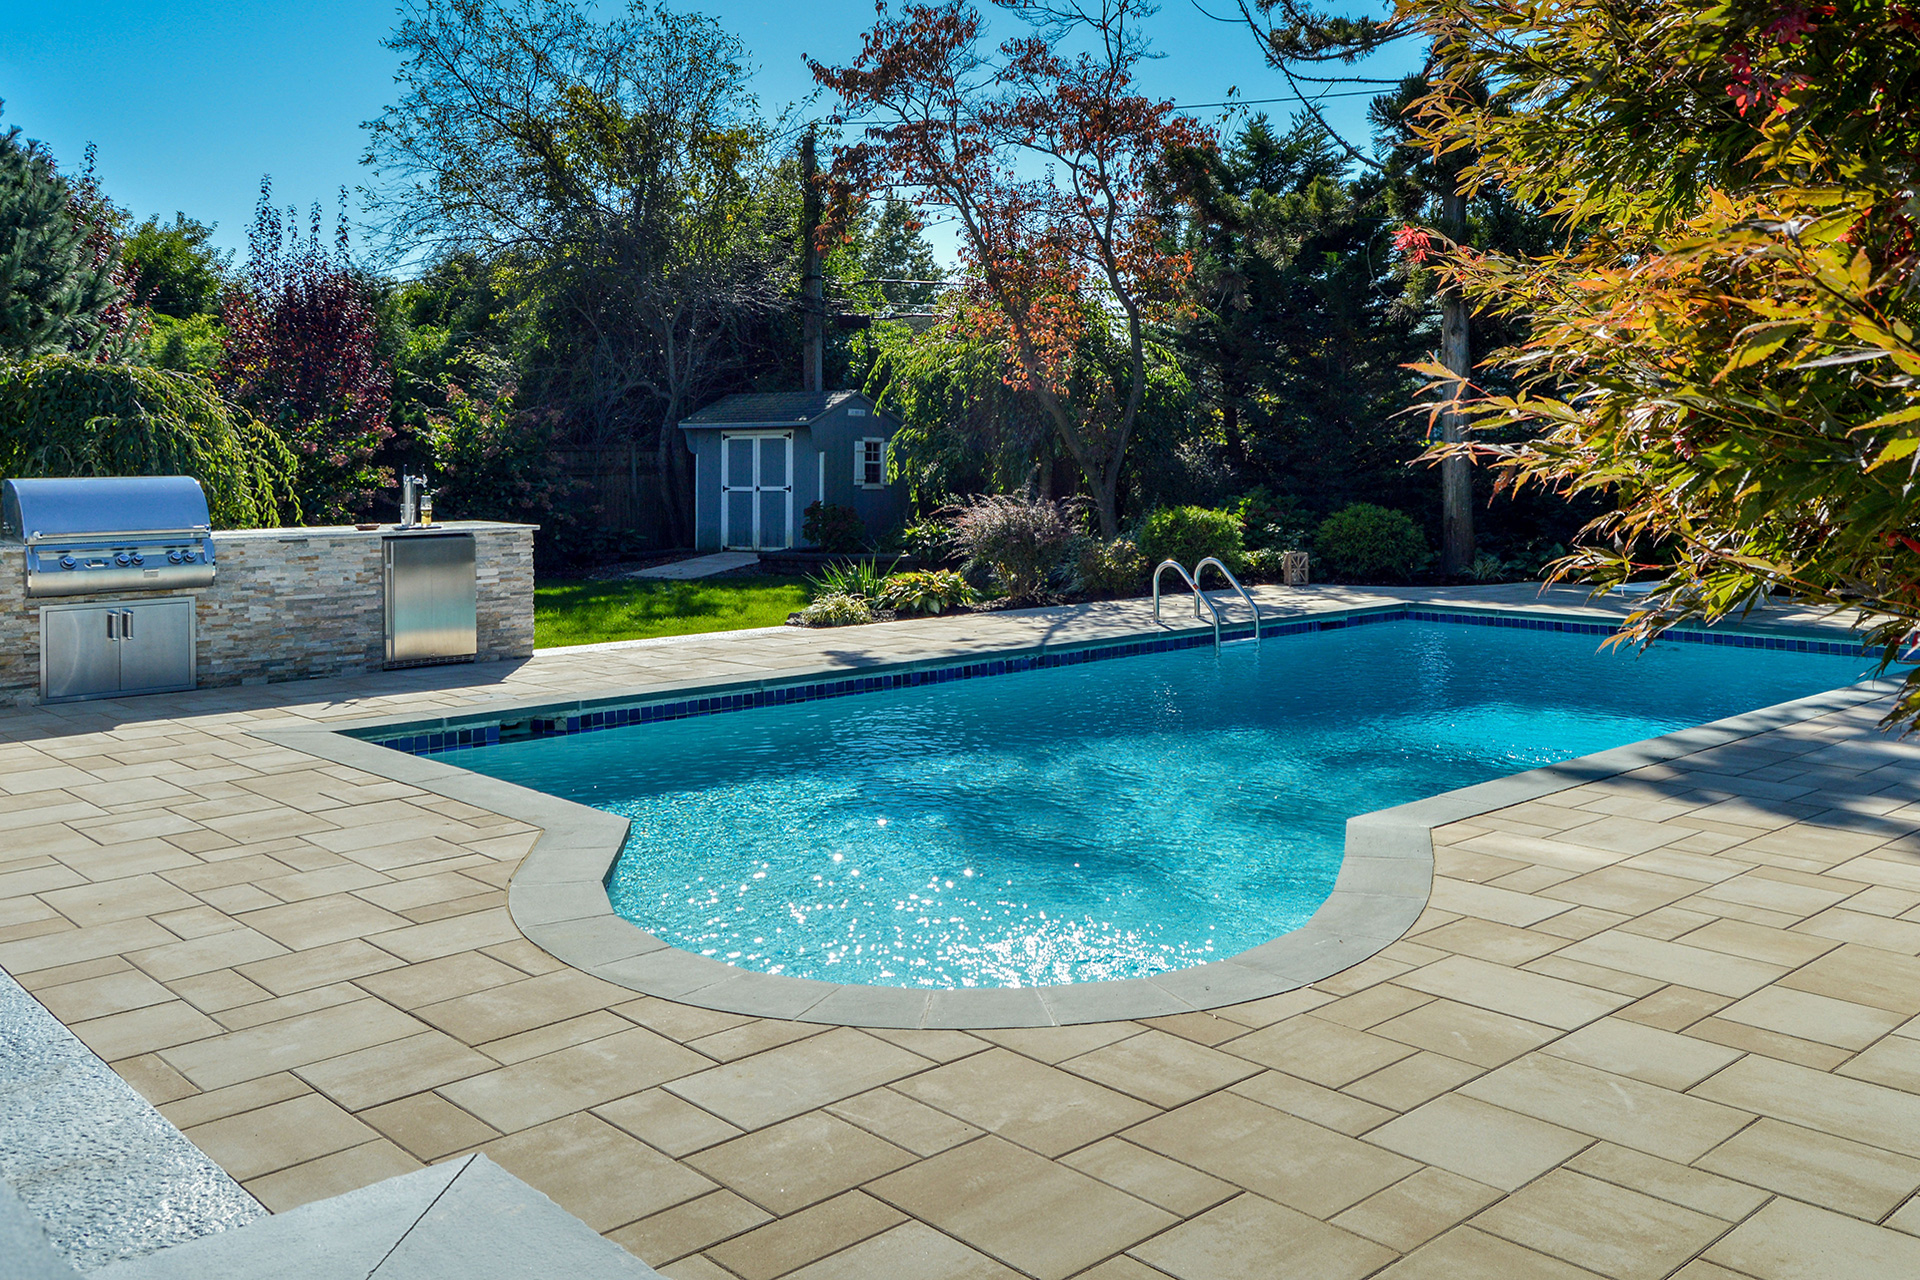 Swimming Pool Design in Long Island, NY